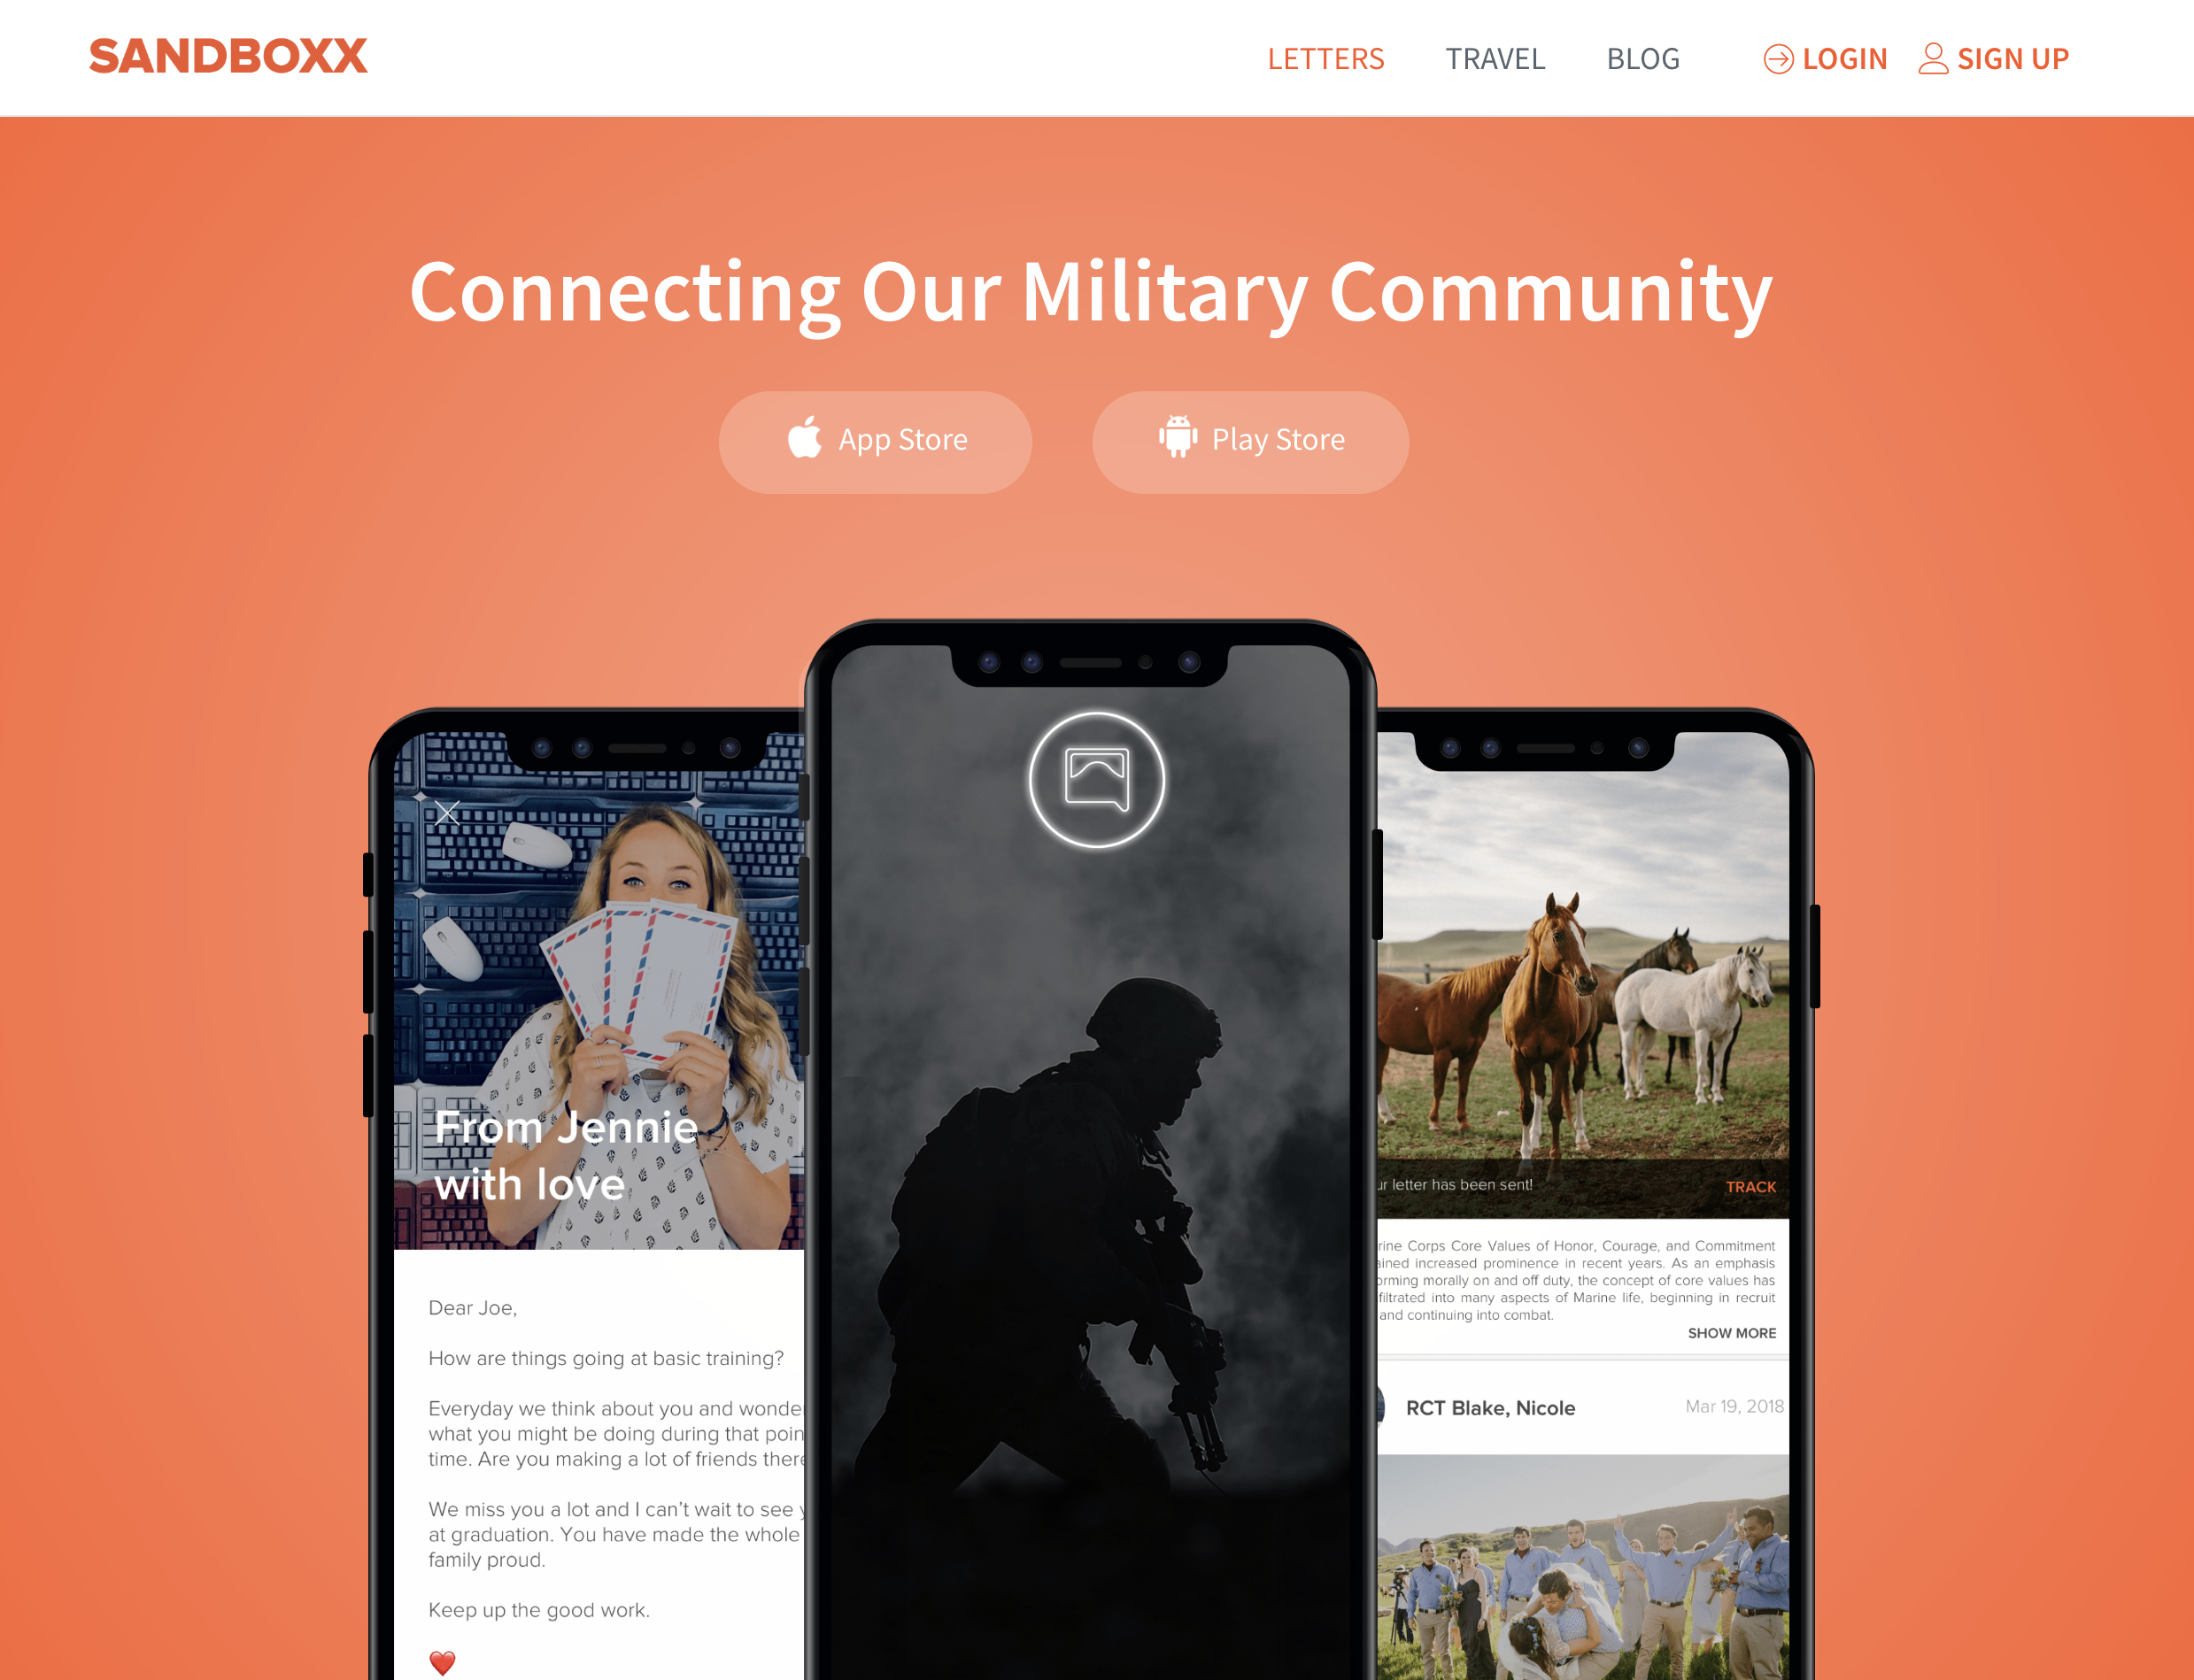 Staff Writer,Sandboxx.us - Sandboxx connects the military community through app-driven letters that can be sent to anyone in basic training, deployed or any military address around the world.